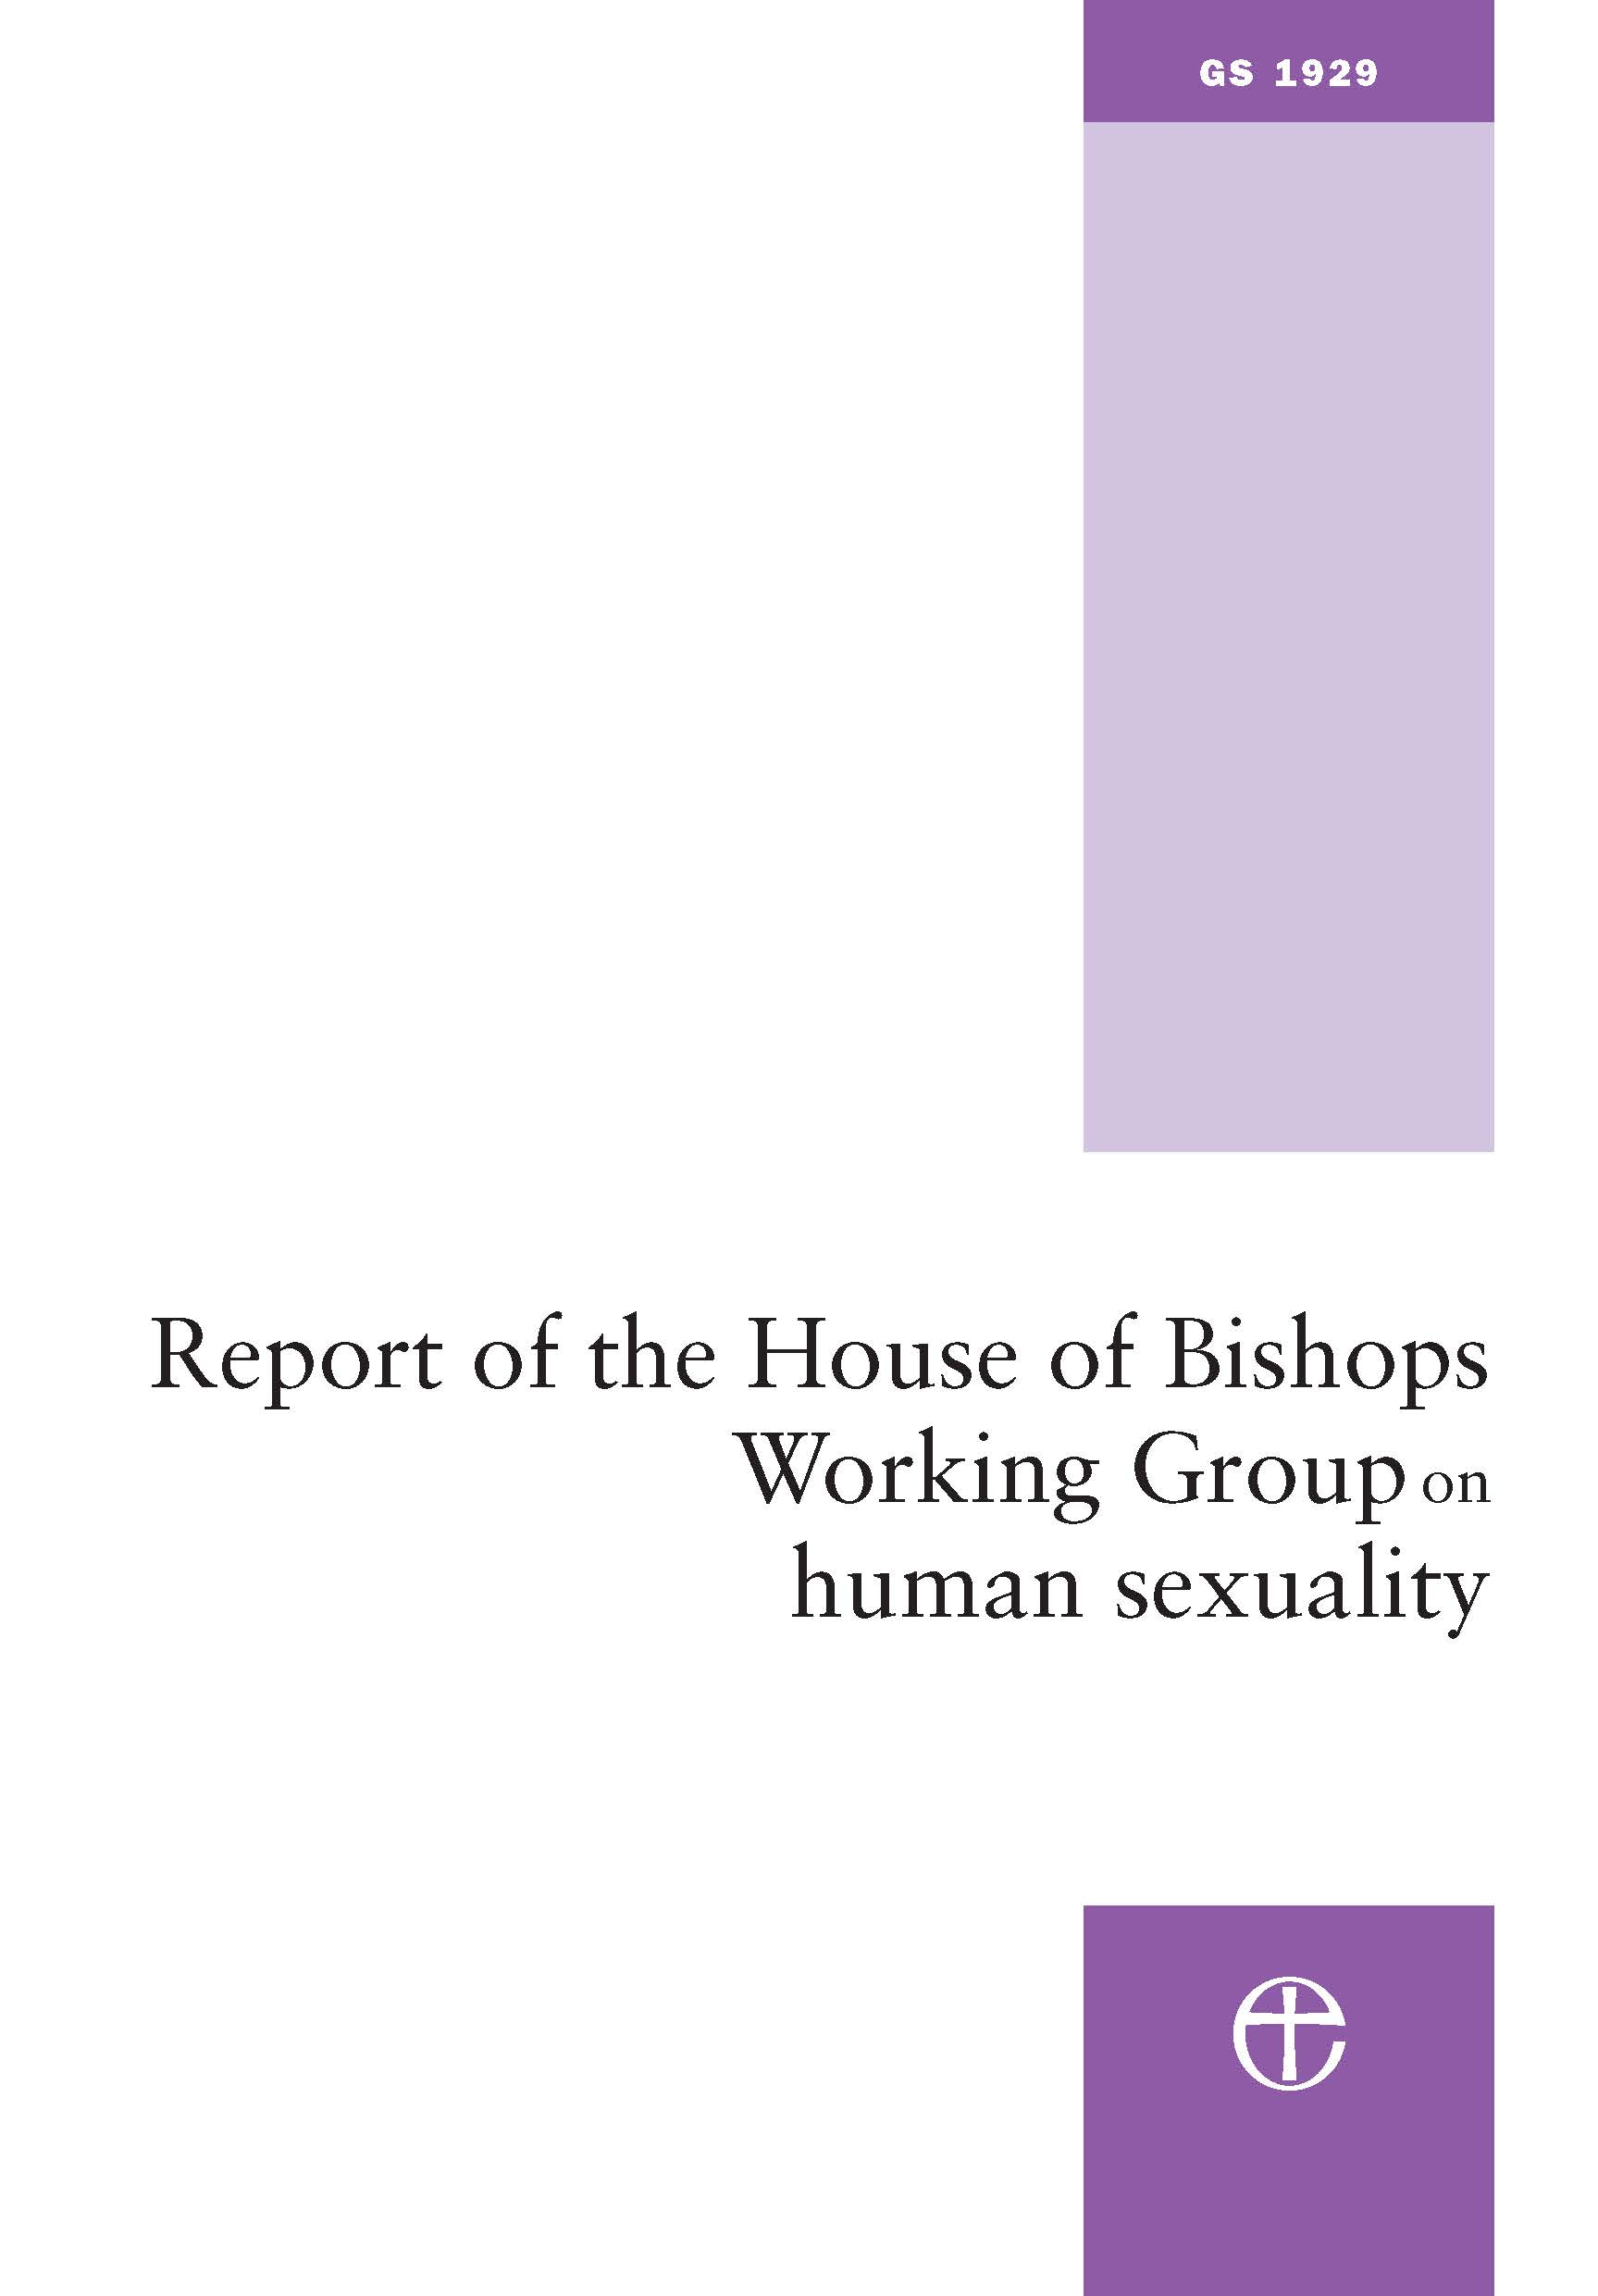 Report of the House of Bishops Working Group on Human Sexuality (The Pilling Report)